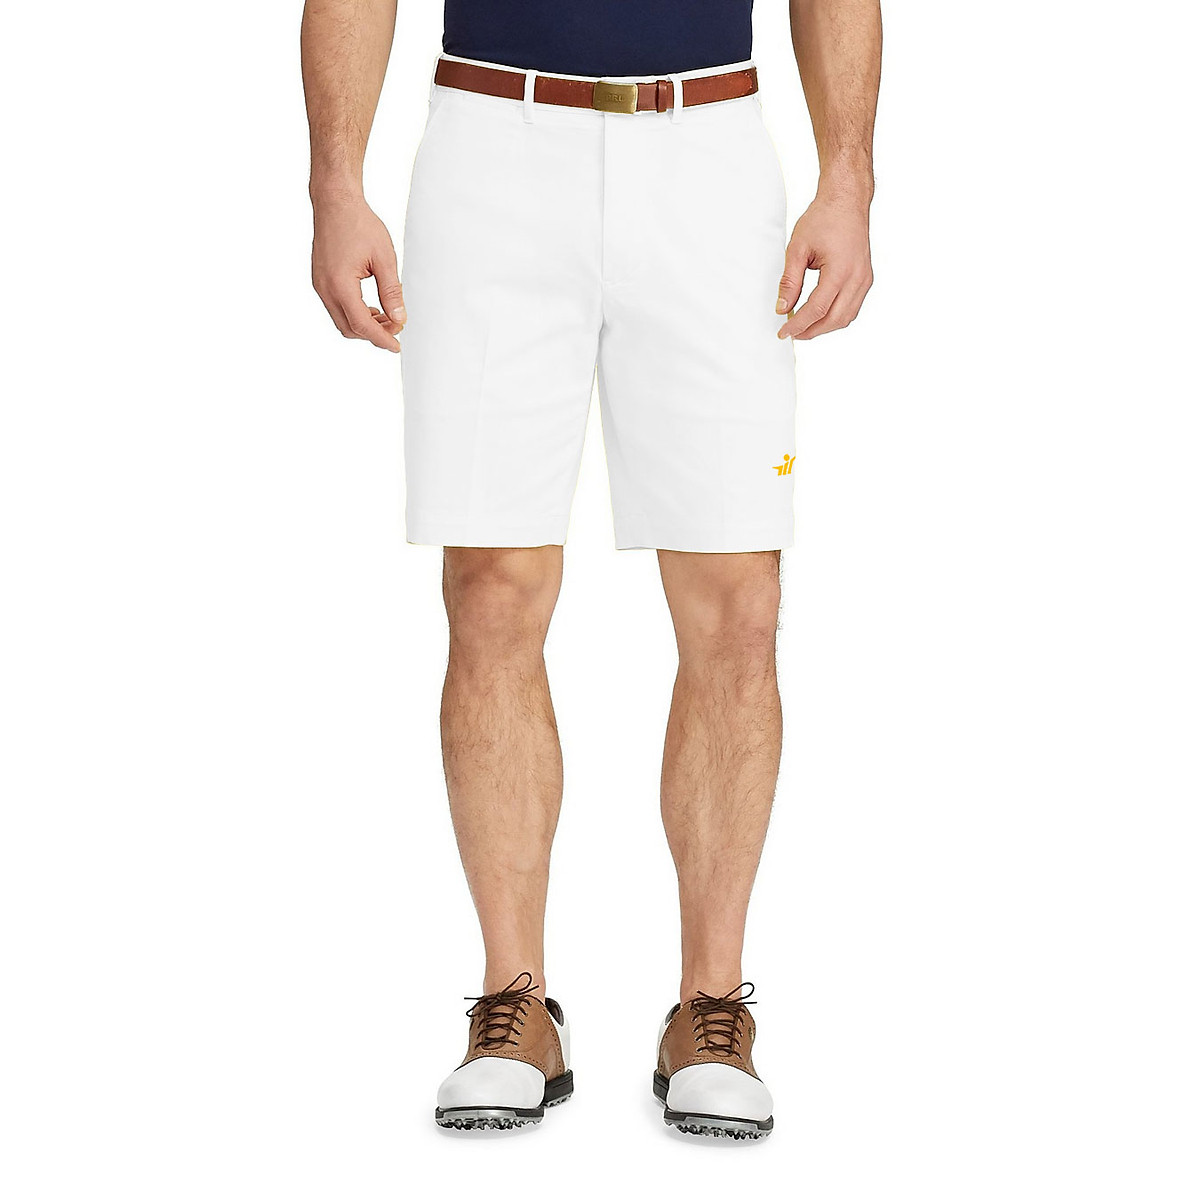 Quần short Golf Nam M17- Shorts 1